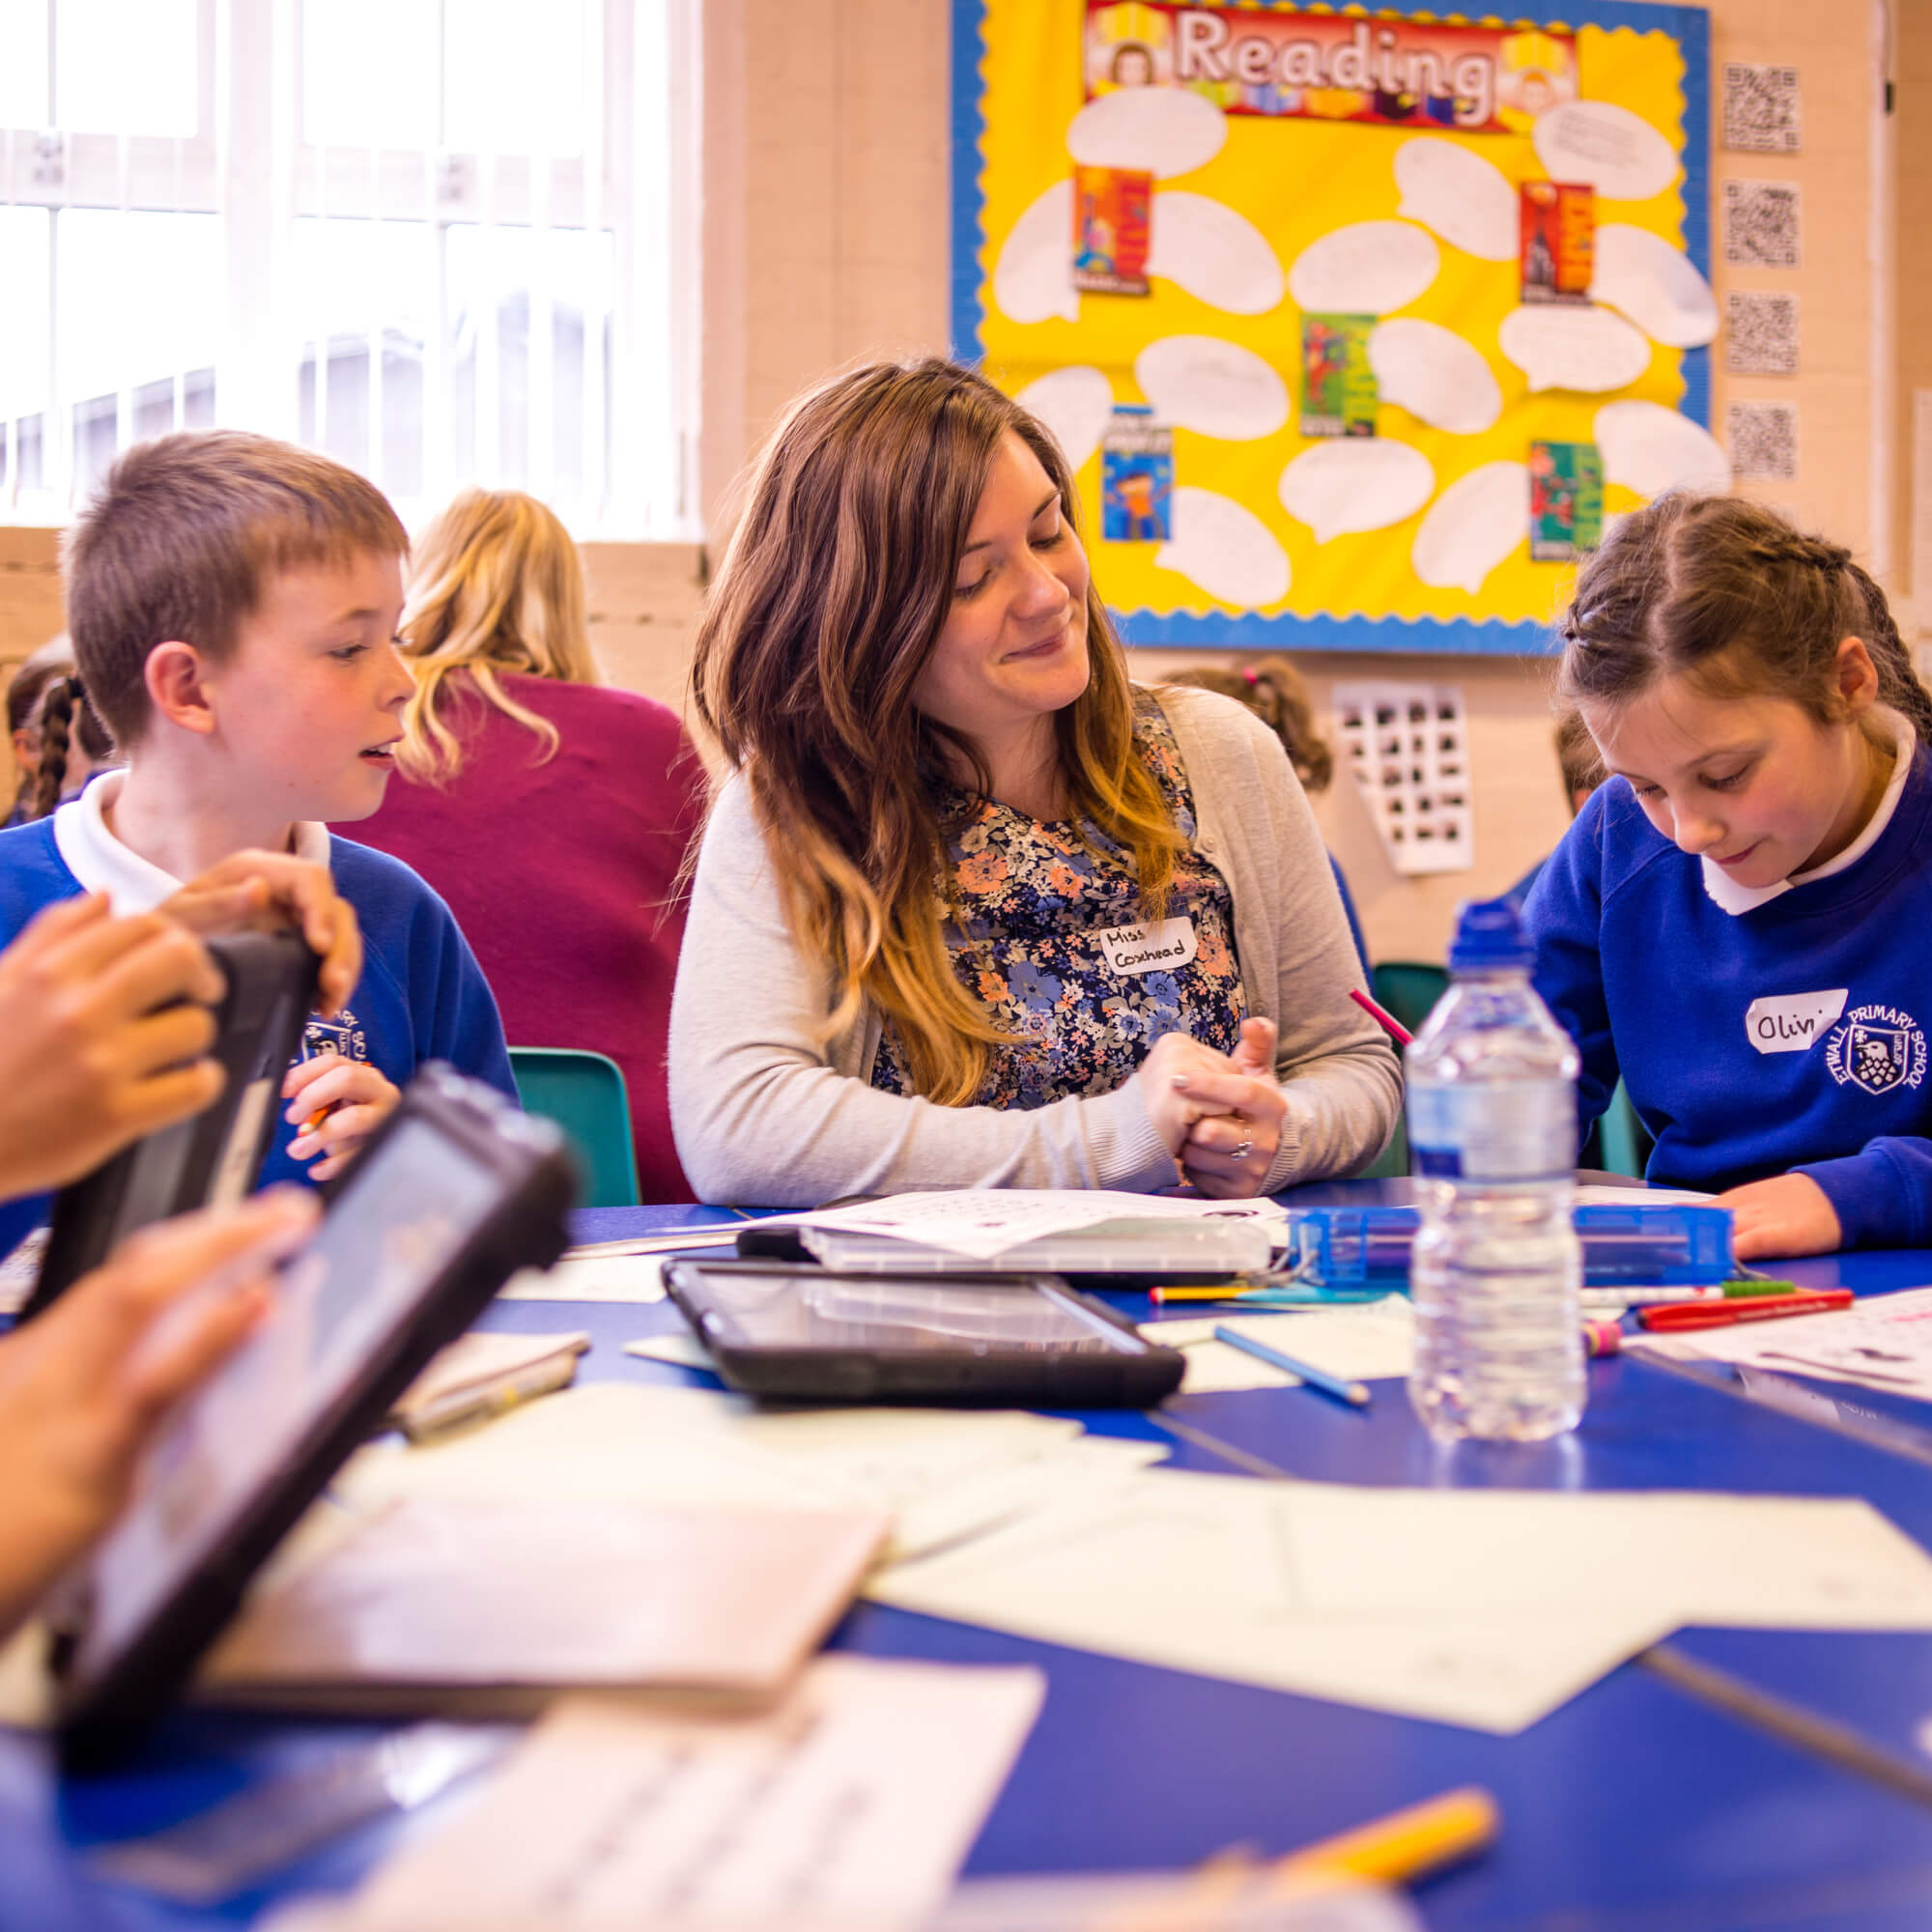 Student teacher sitting at a table with primary school pupils